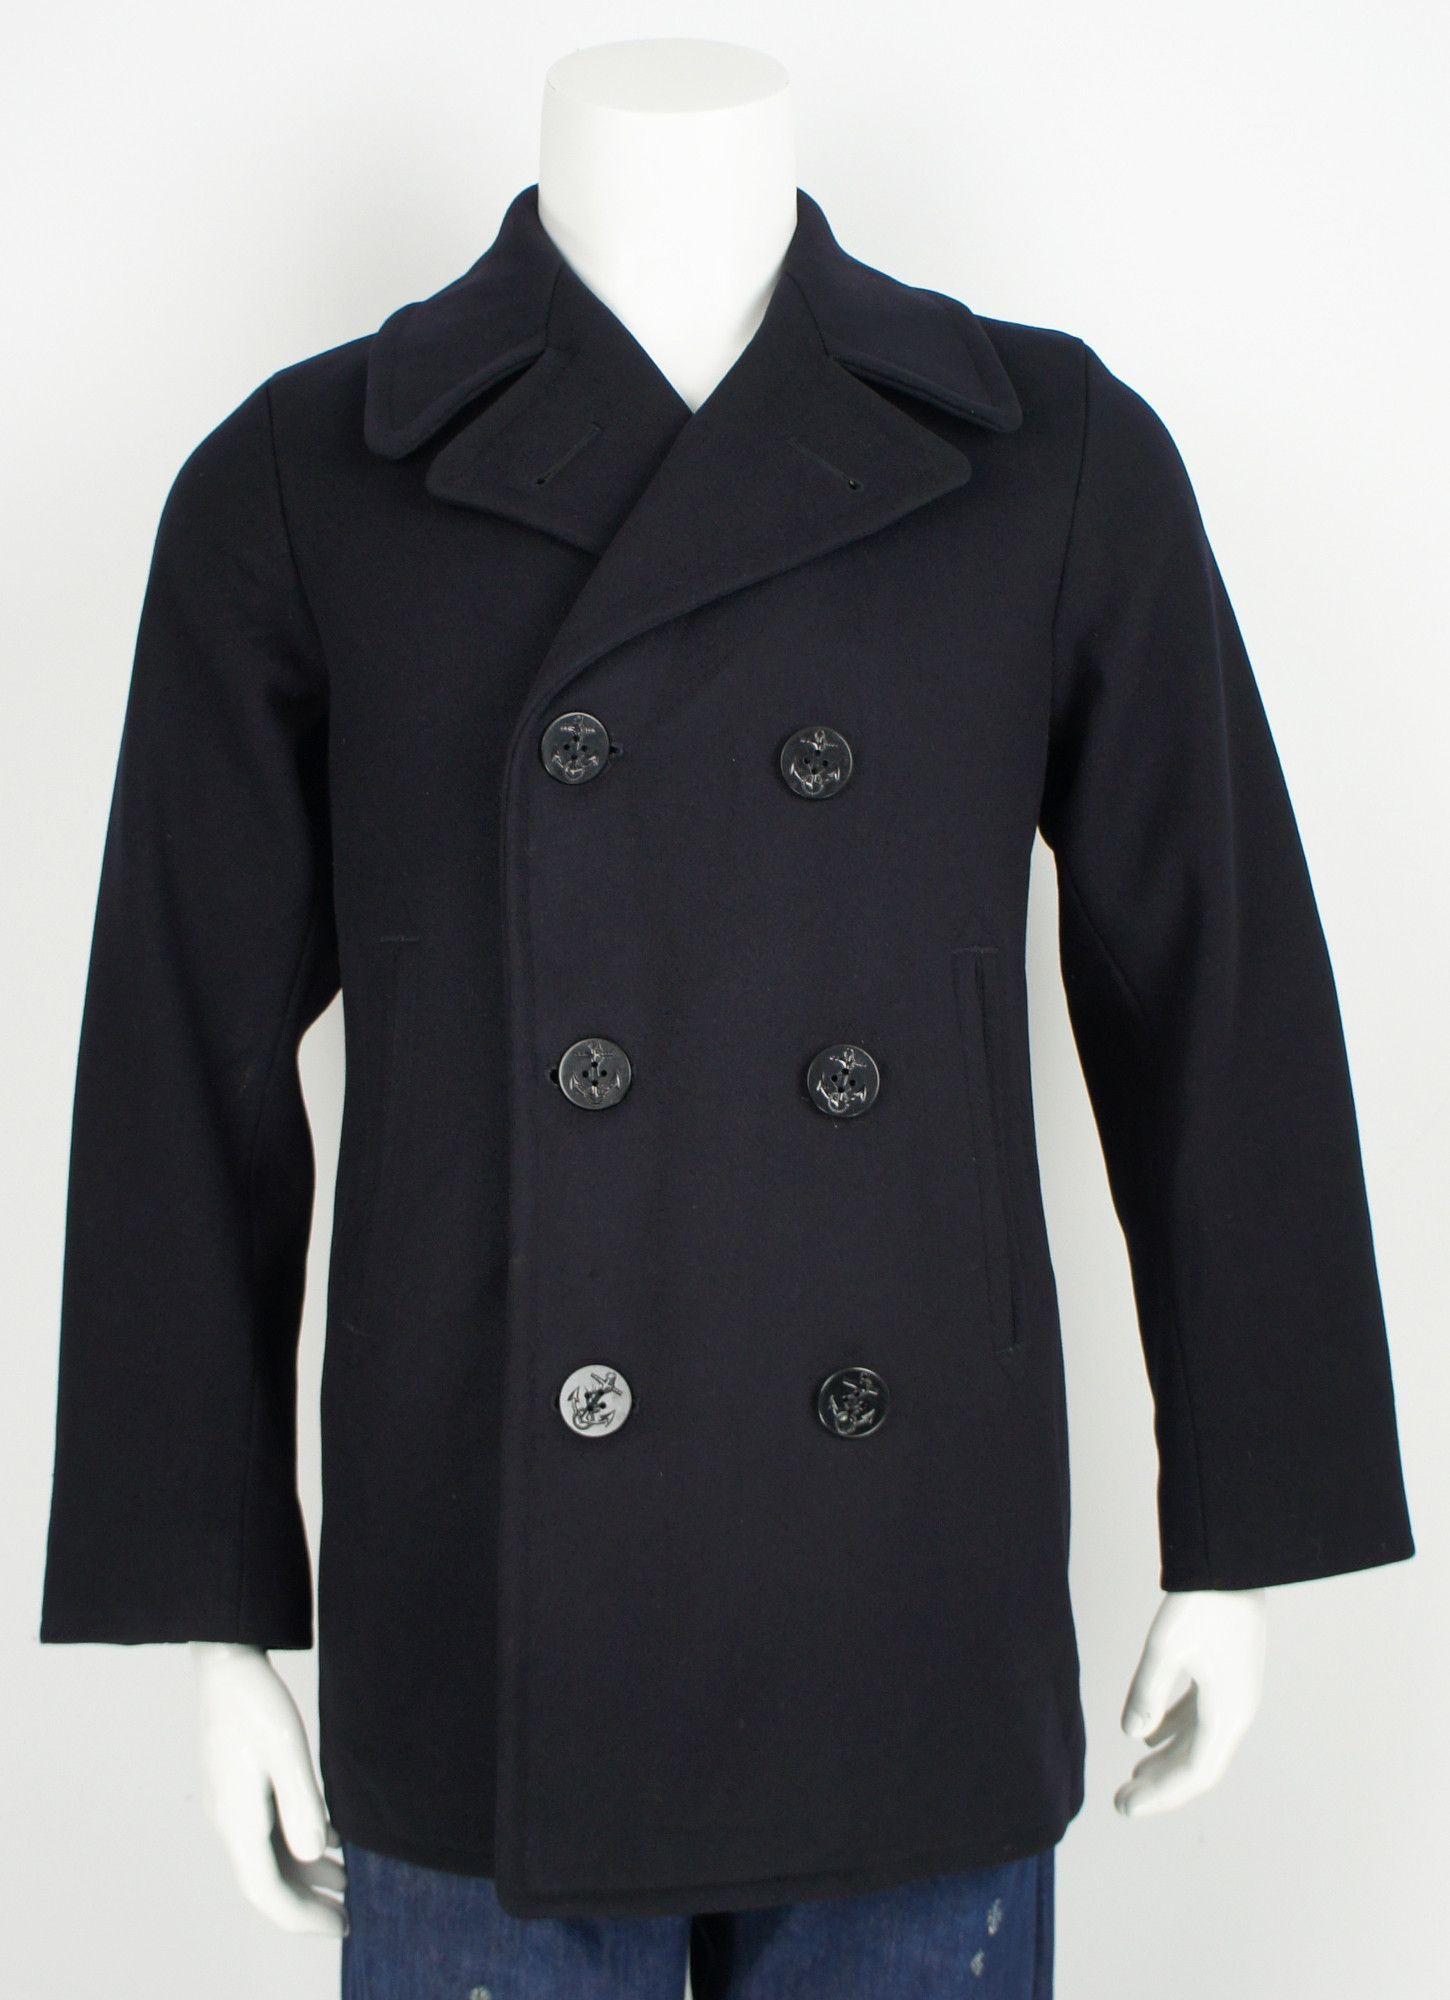 Which christmas gown ideas with holed - Fantastic Classic Us Navy Pea Coat In Great Condition There Are No Holes Or Stains Inner Silk Lining Has Original Stencils And Is In Good Condition